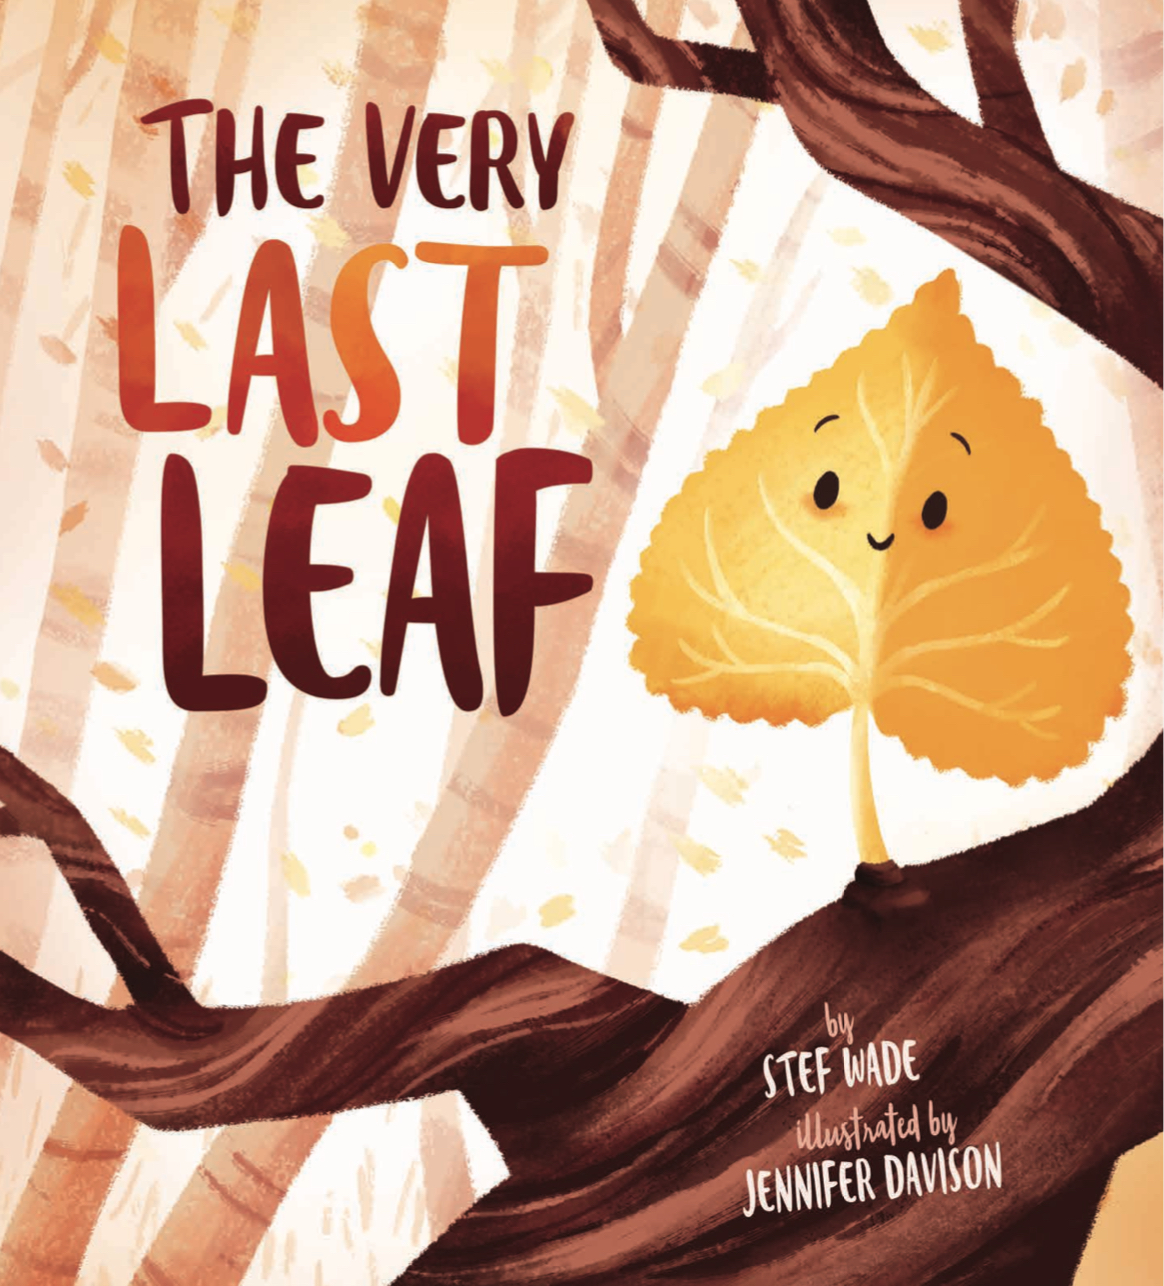 THE VERY LAST LEAF cover image